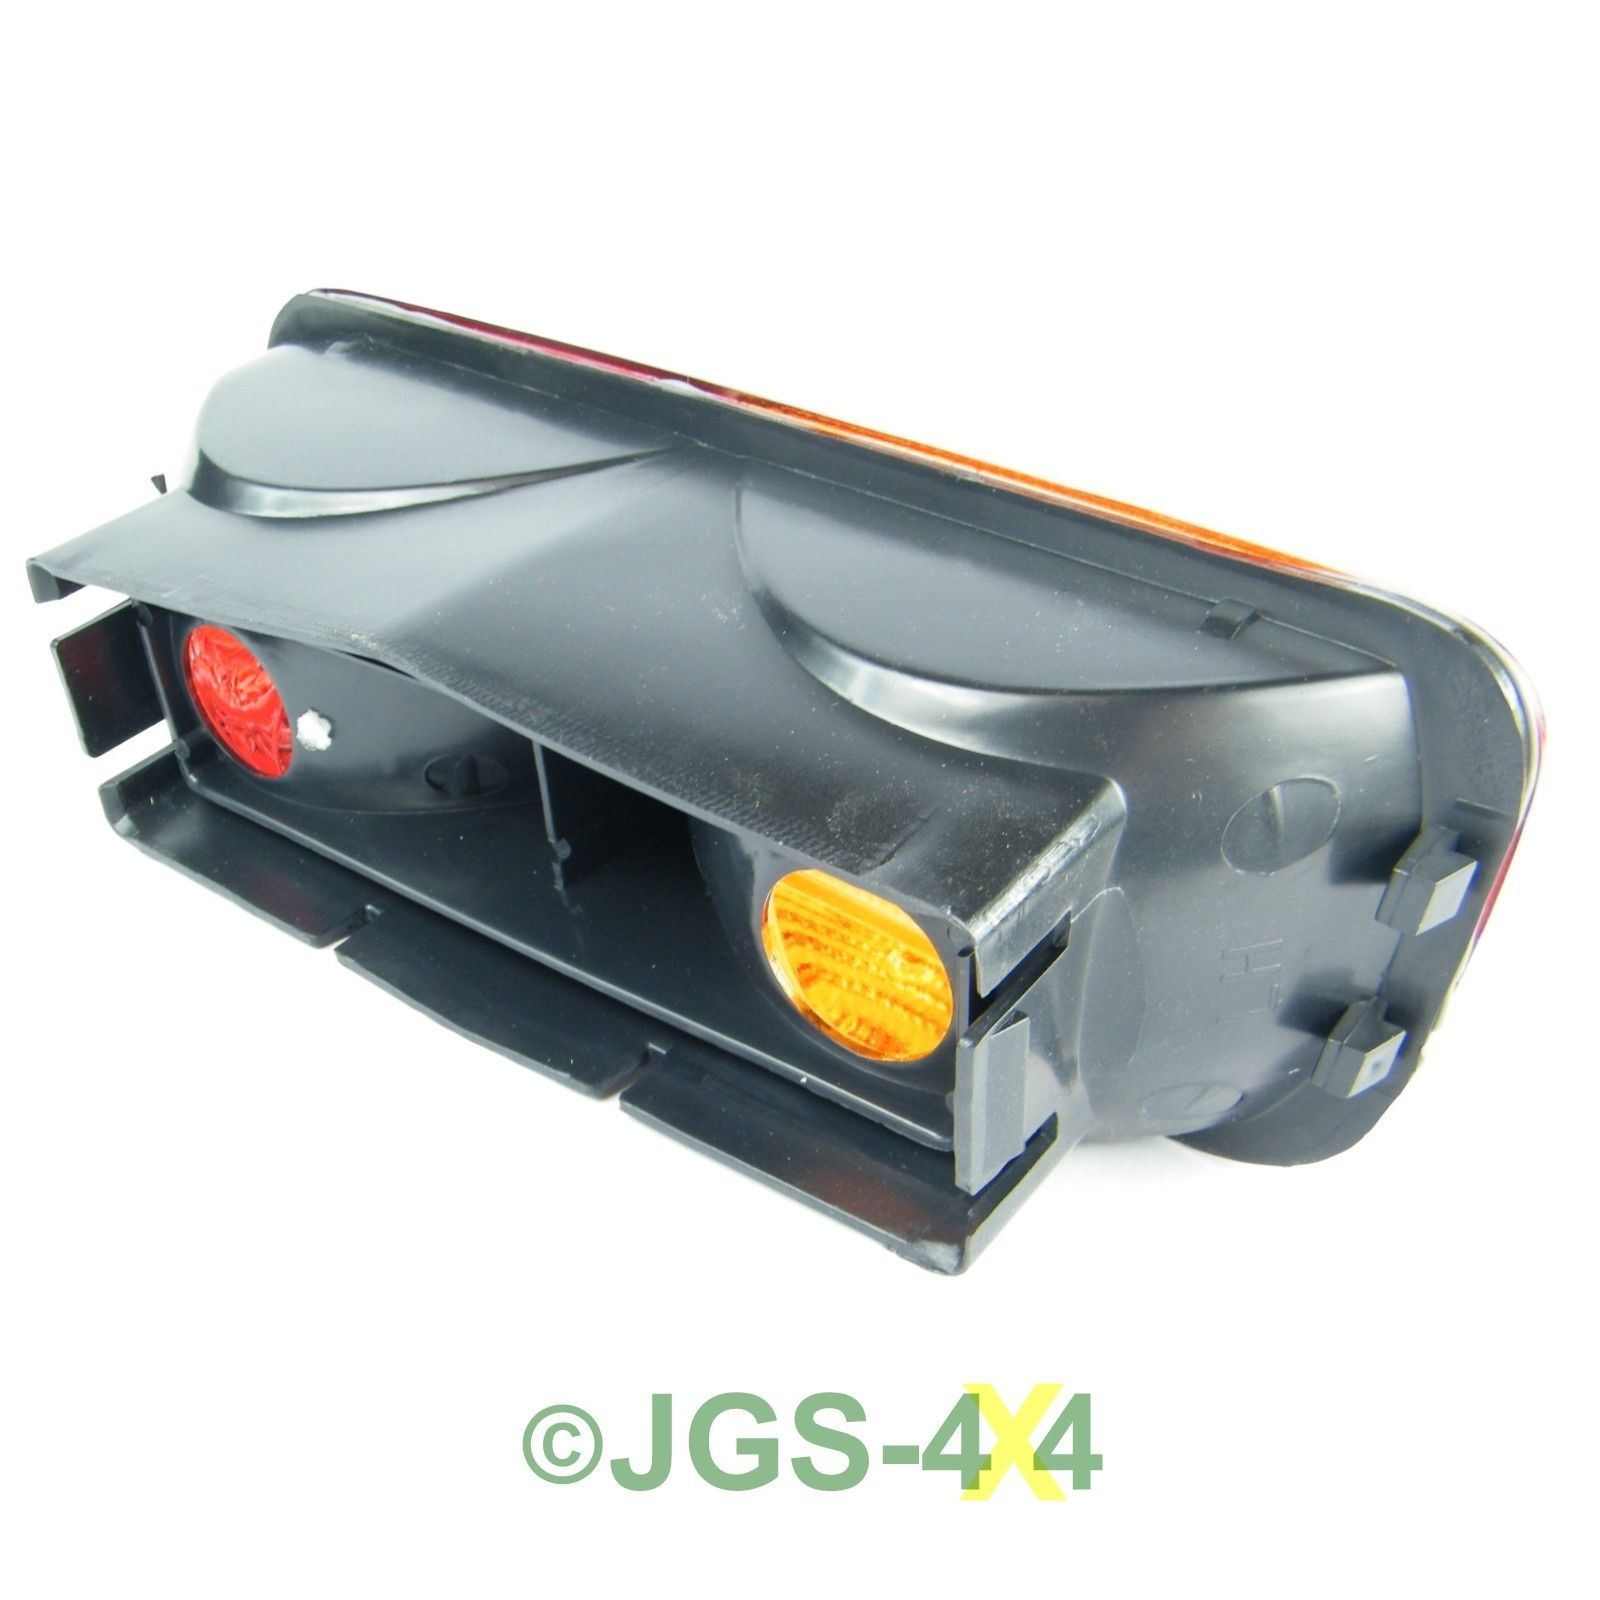 Land Rover Discovery 2 Range Rover P38 Rear Lhs N S: Land Rover Discovery 2 Rear Bumper Light Lamp Left LH (98